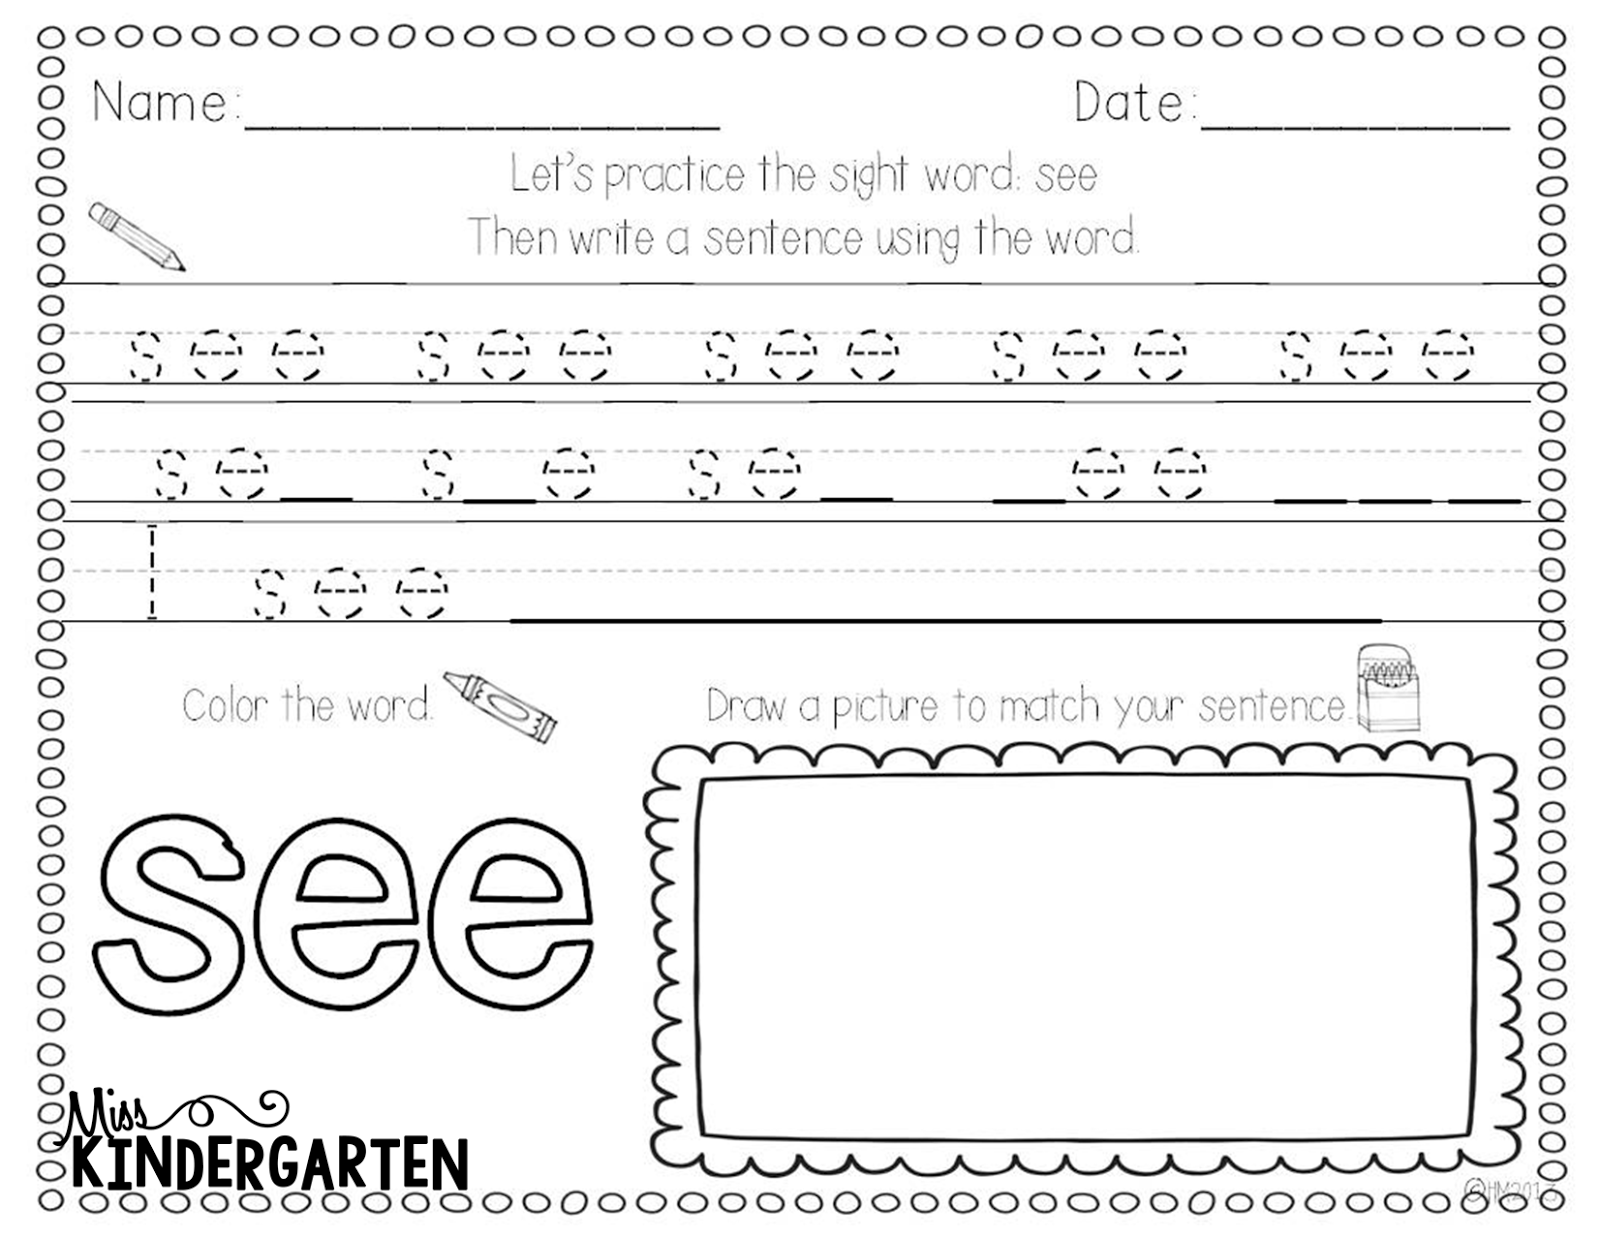 sight word practice on pinterest sight words sight word practice and writing practice. Black Bedroom Furniture Sets. Home Design Ideas